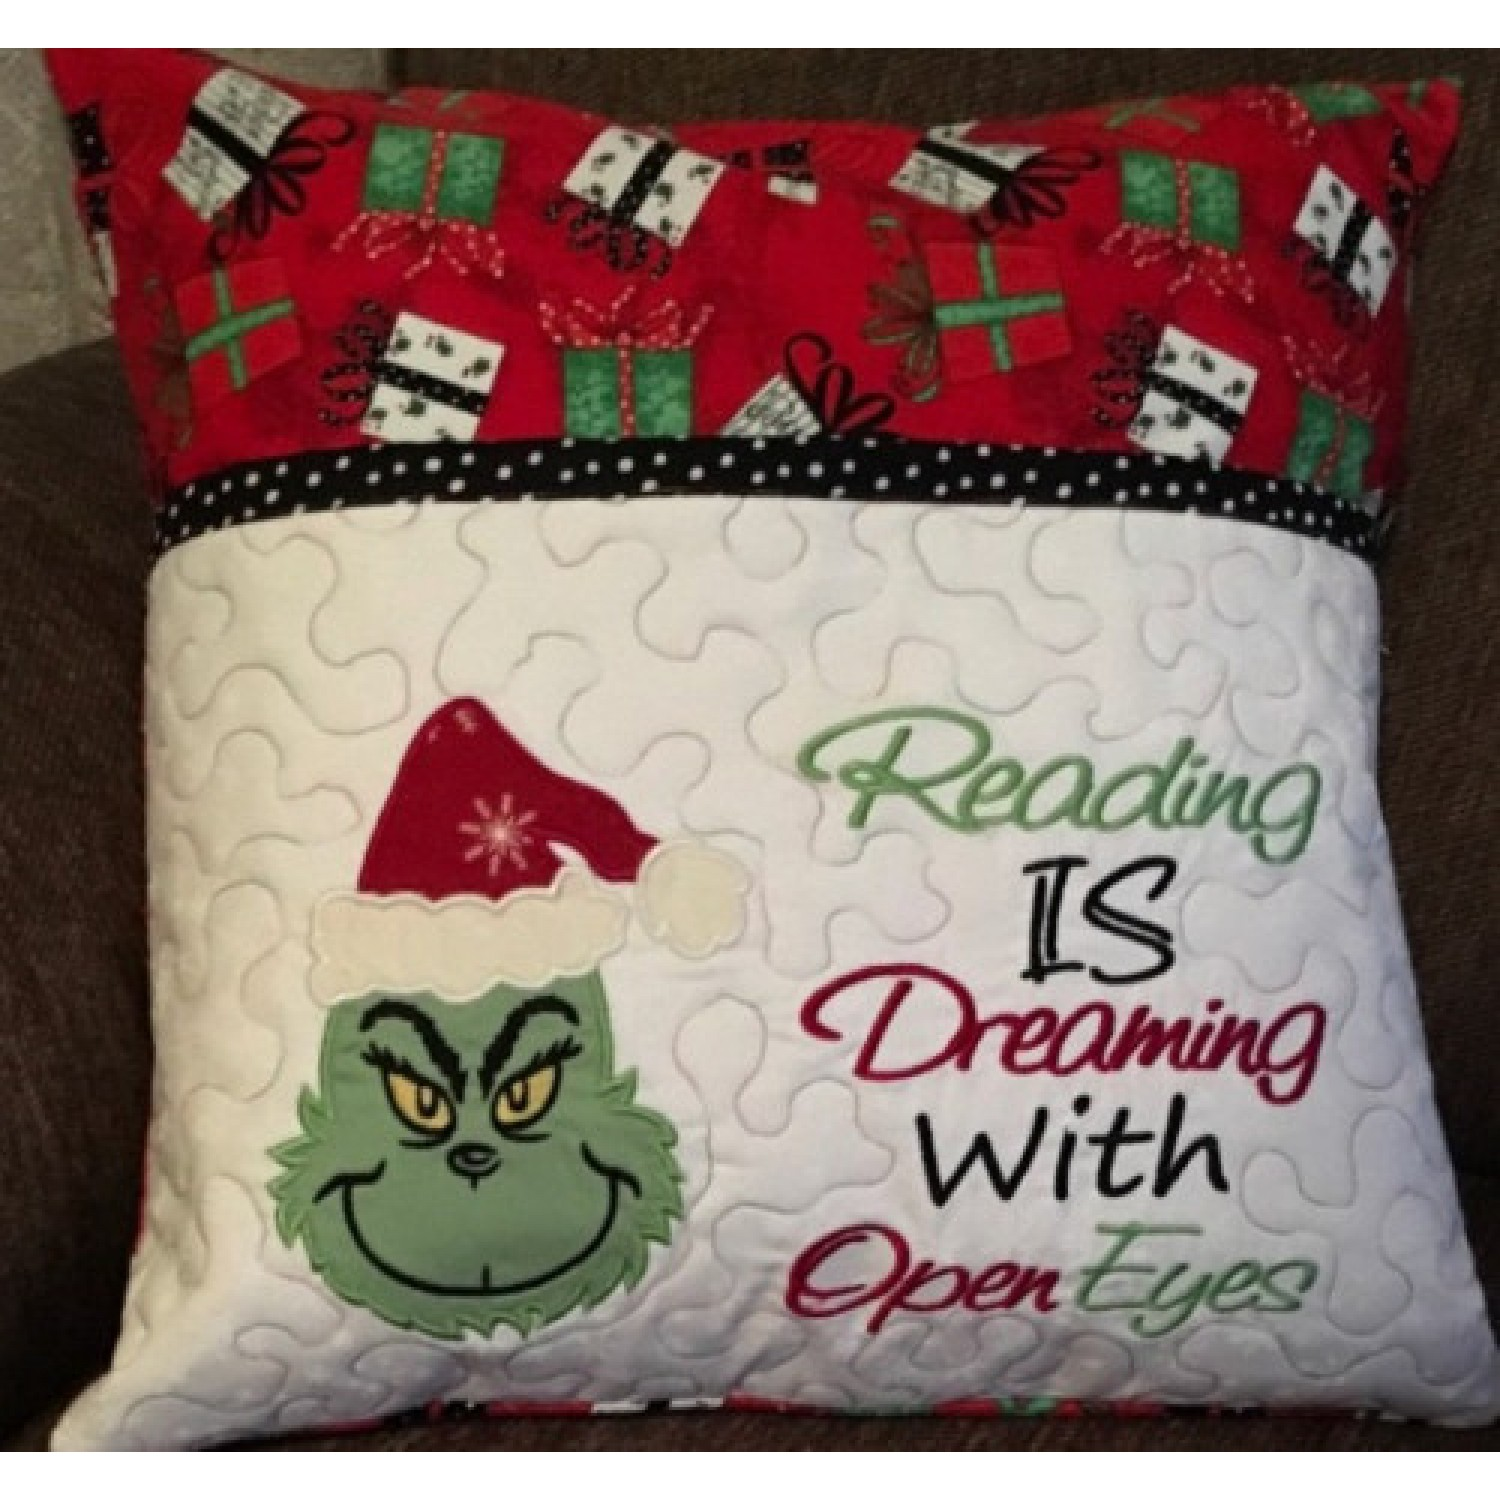 Grinch face with reading is dreaming designs